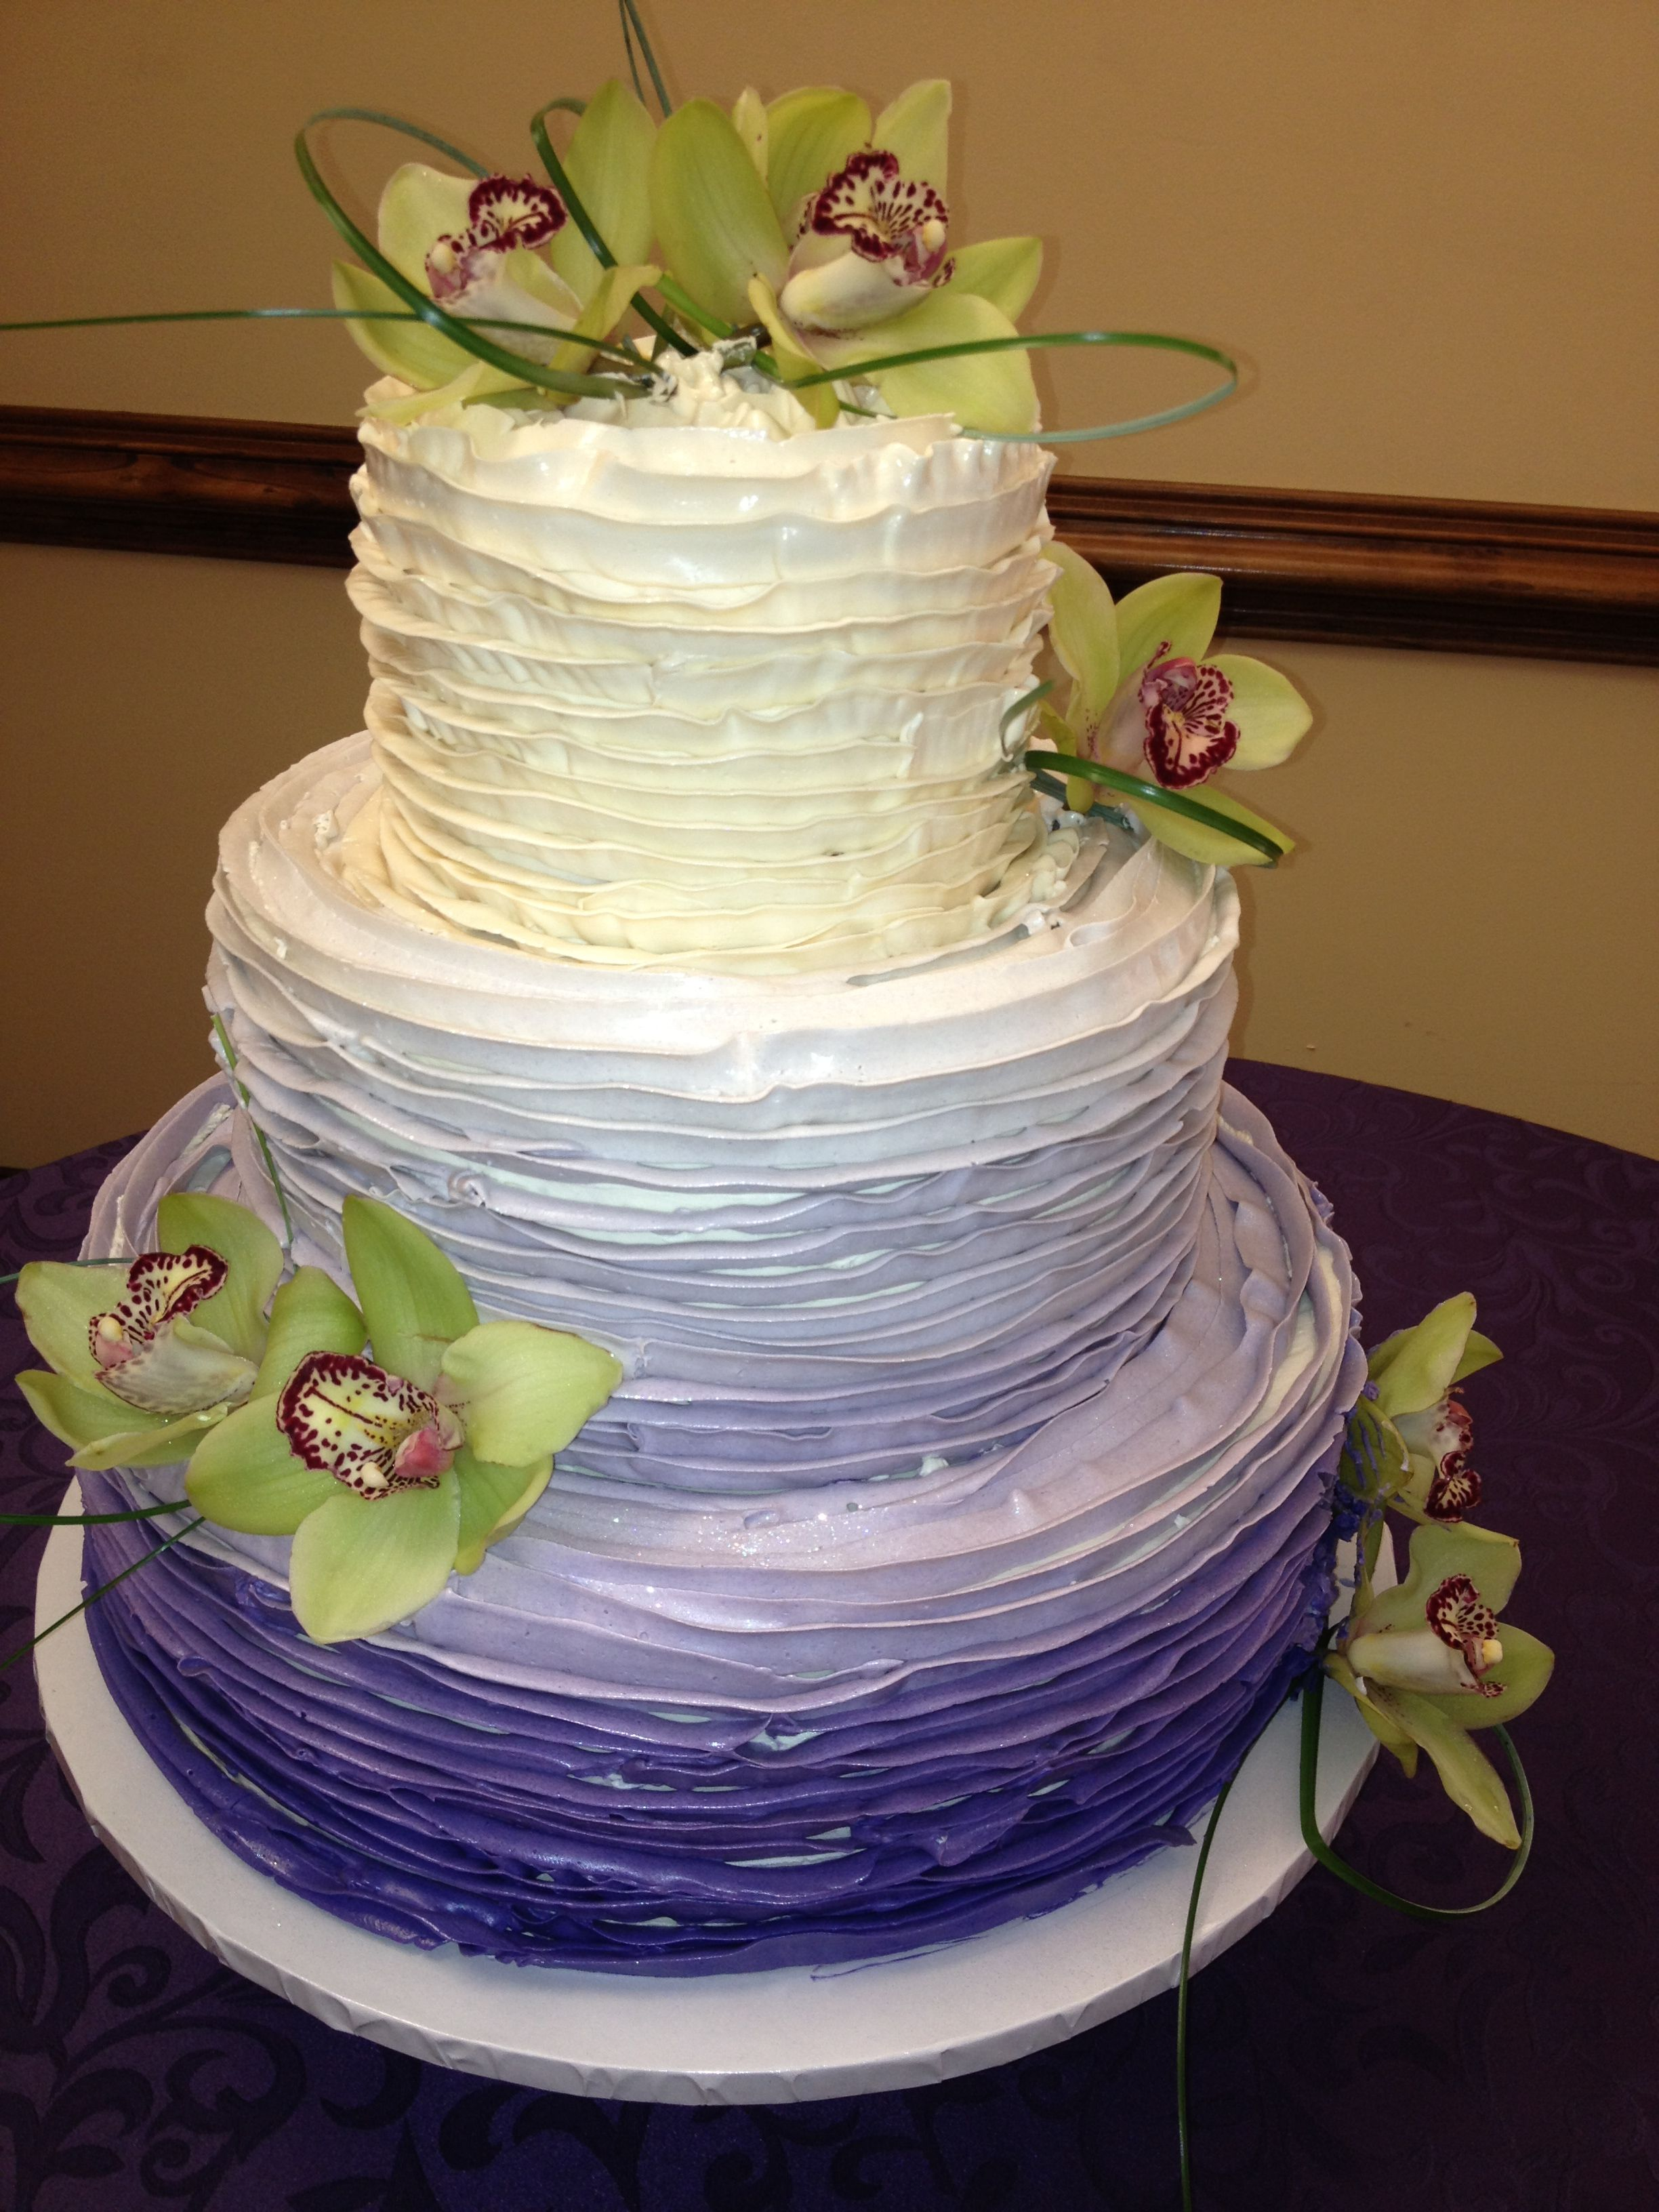 Wedding Cake Decorating Buttercream : purple ombre cake in buttercream Blondie s: Wedding Cakes Pinterest Ombre cake, Wedding ...